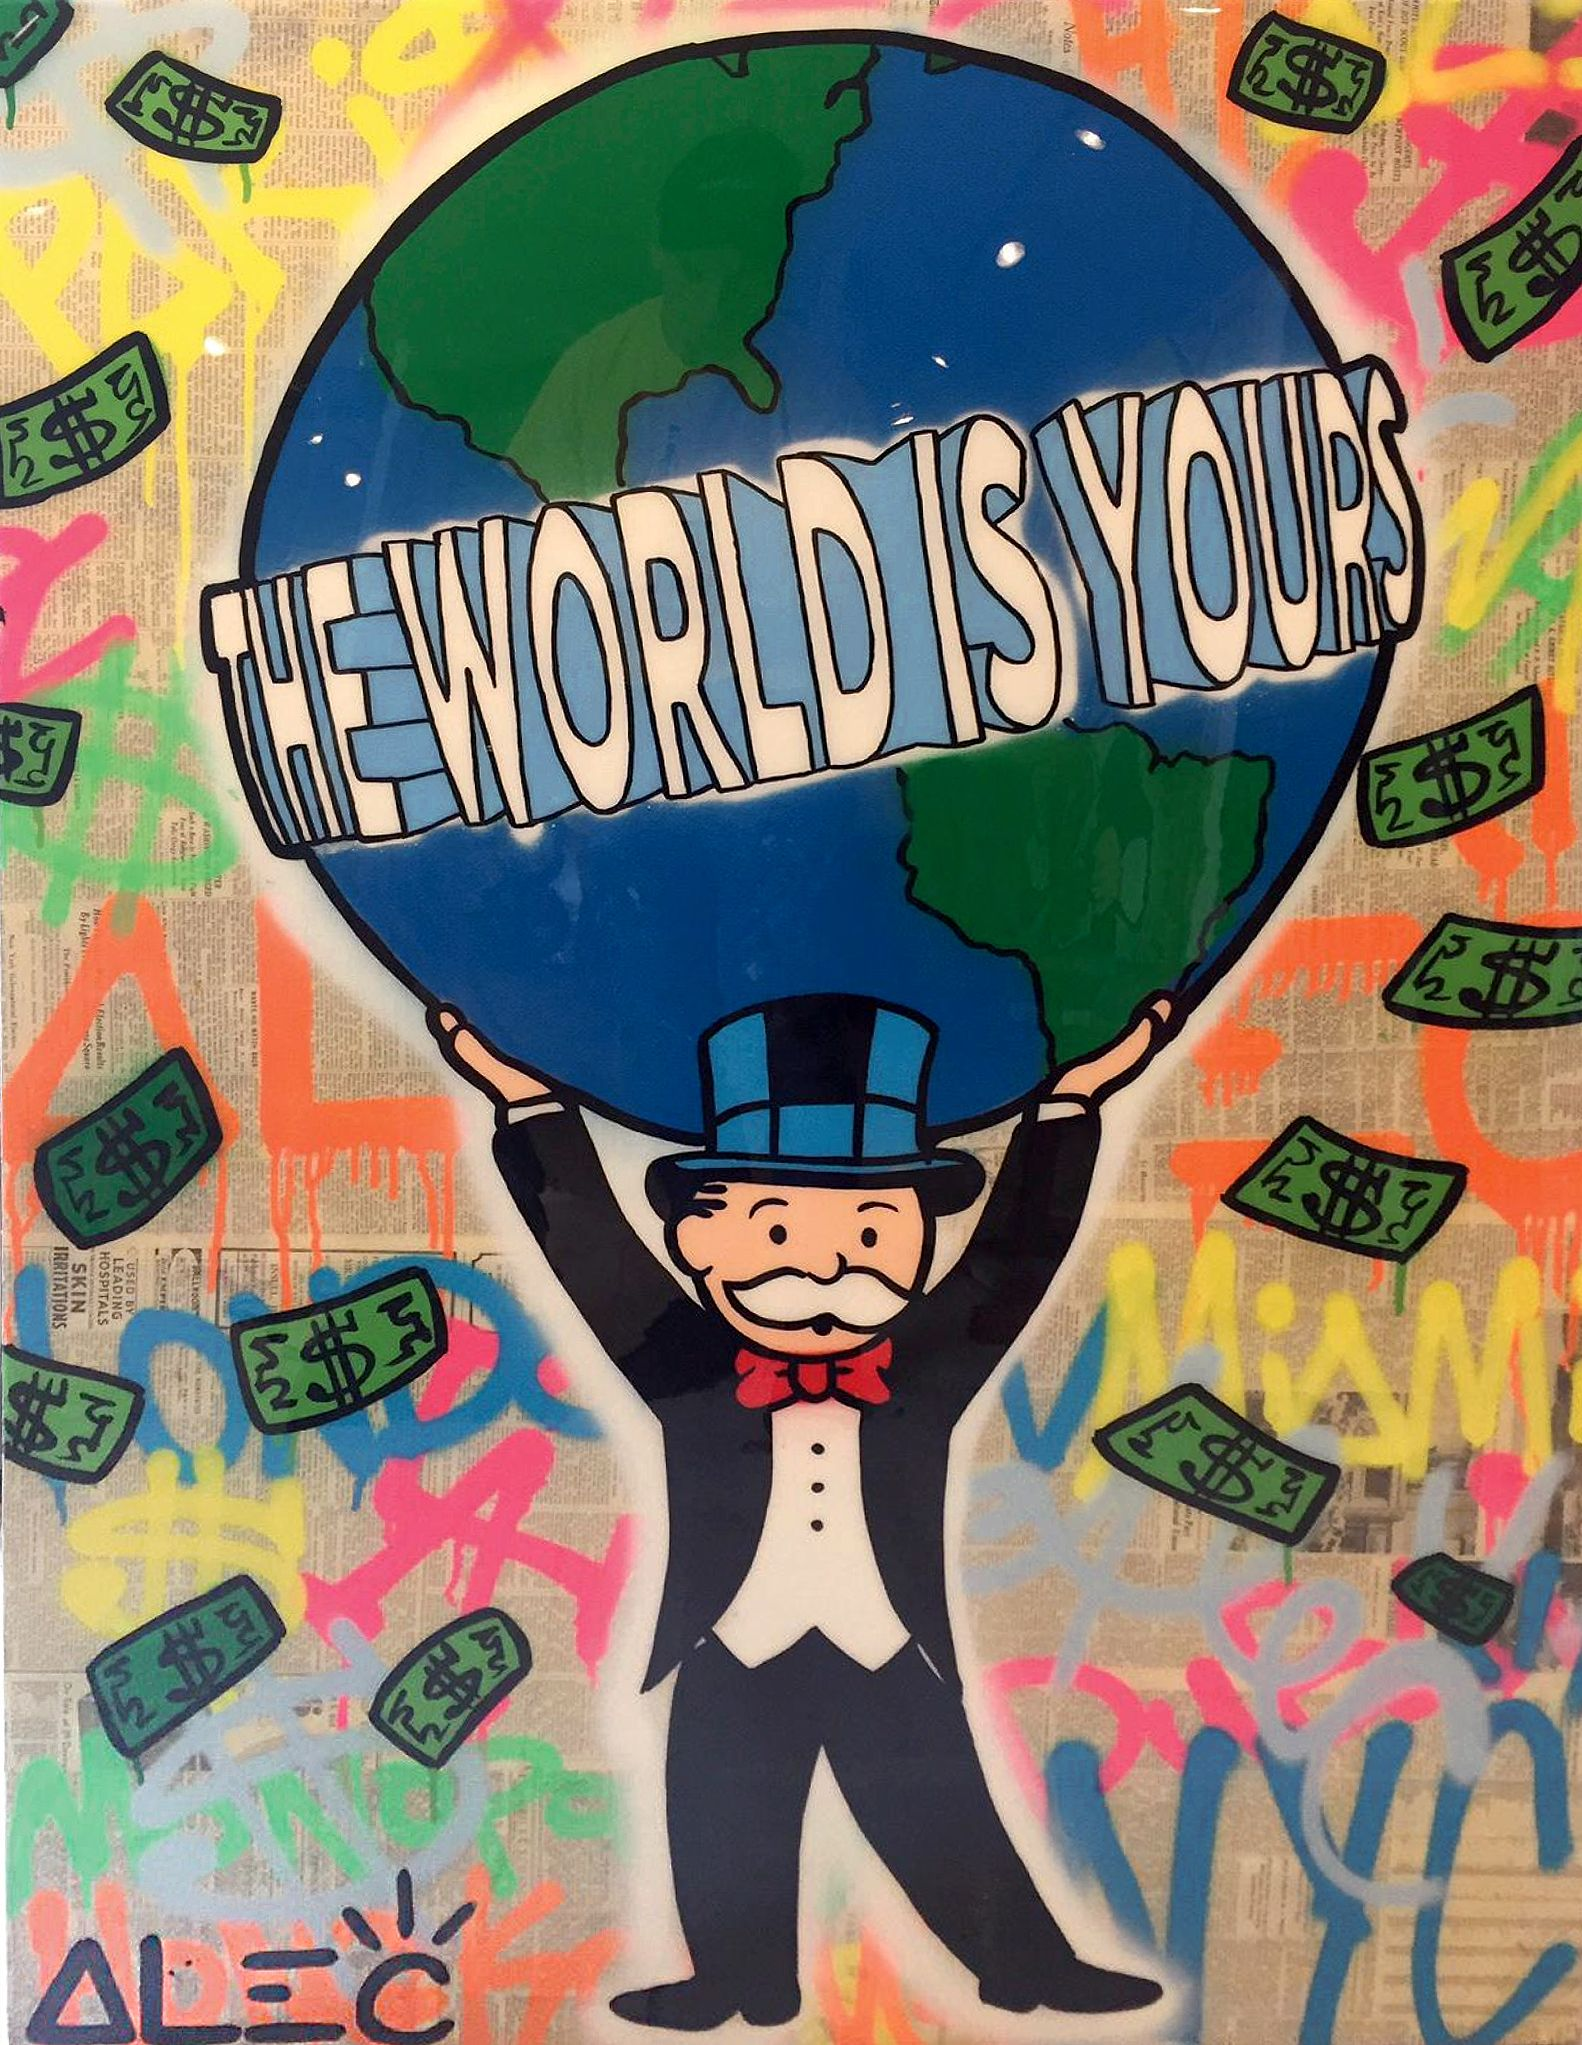 7f4ba629009 Alec Monopoly - The world is yours - Eden Fine Art Gallery